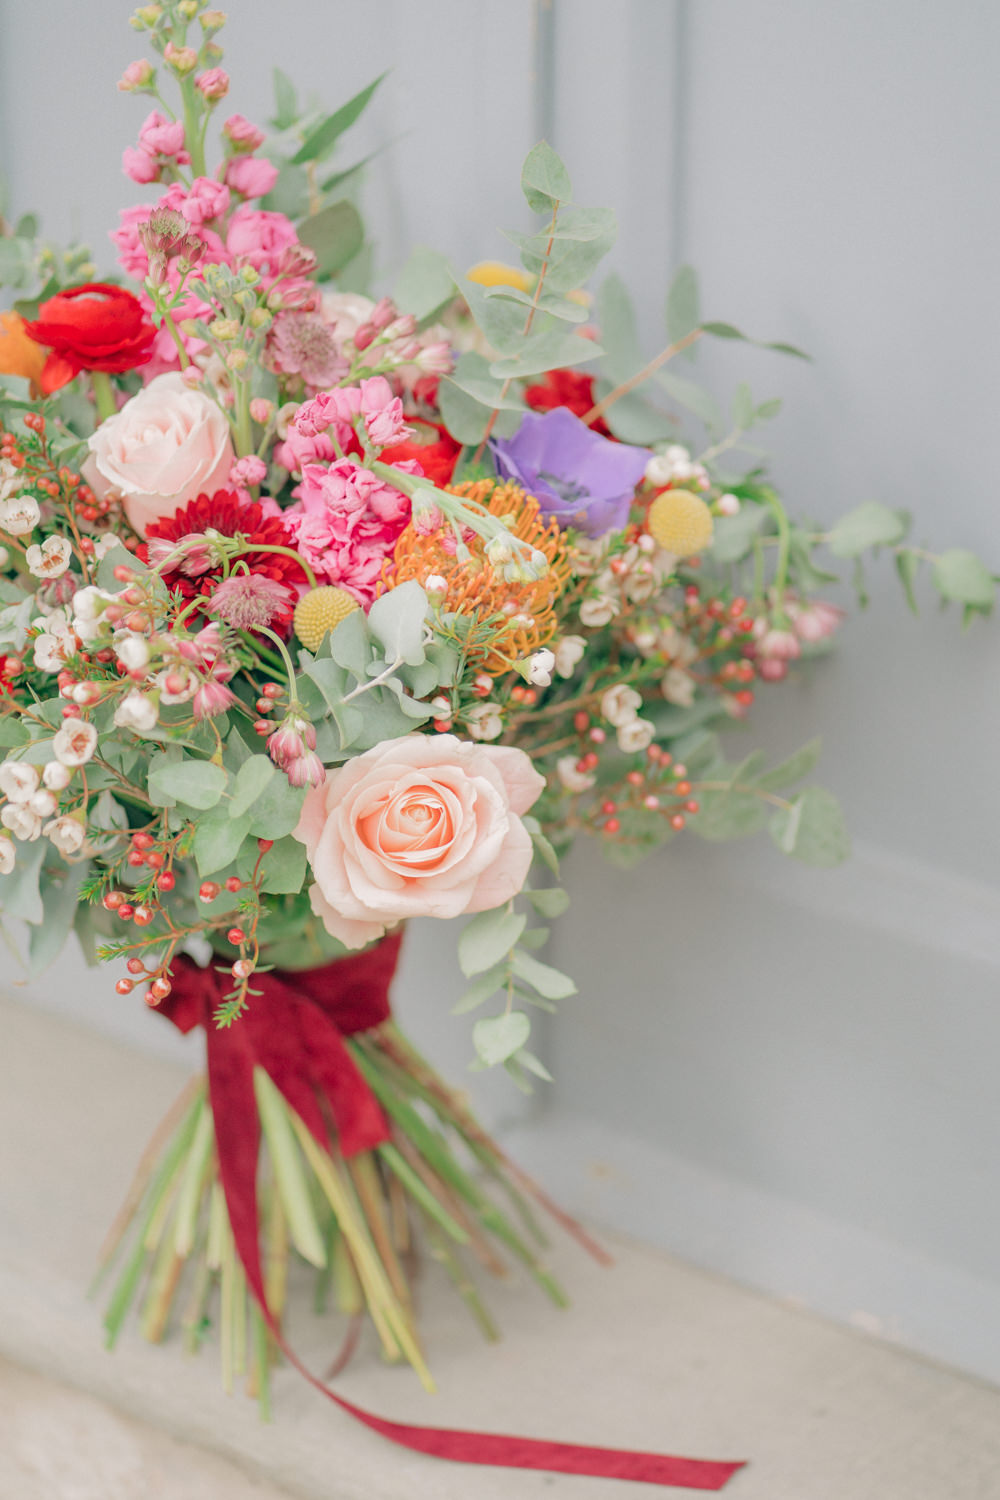 Bouquet Flowers Bride Bridal Pink Red Rose Ranunculus Ribbon Tuscan Wedding Ideas Giuseppe Giovannelli